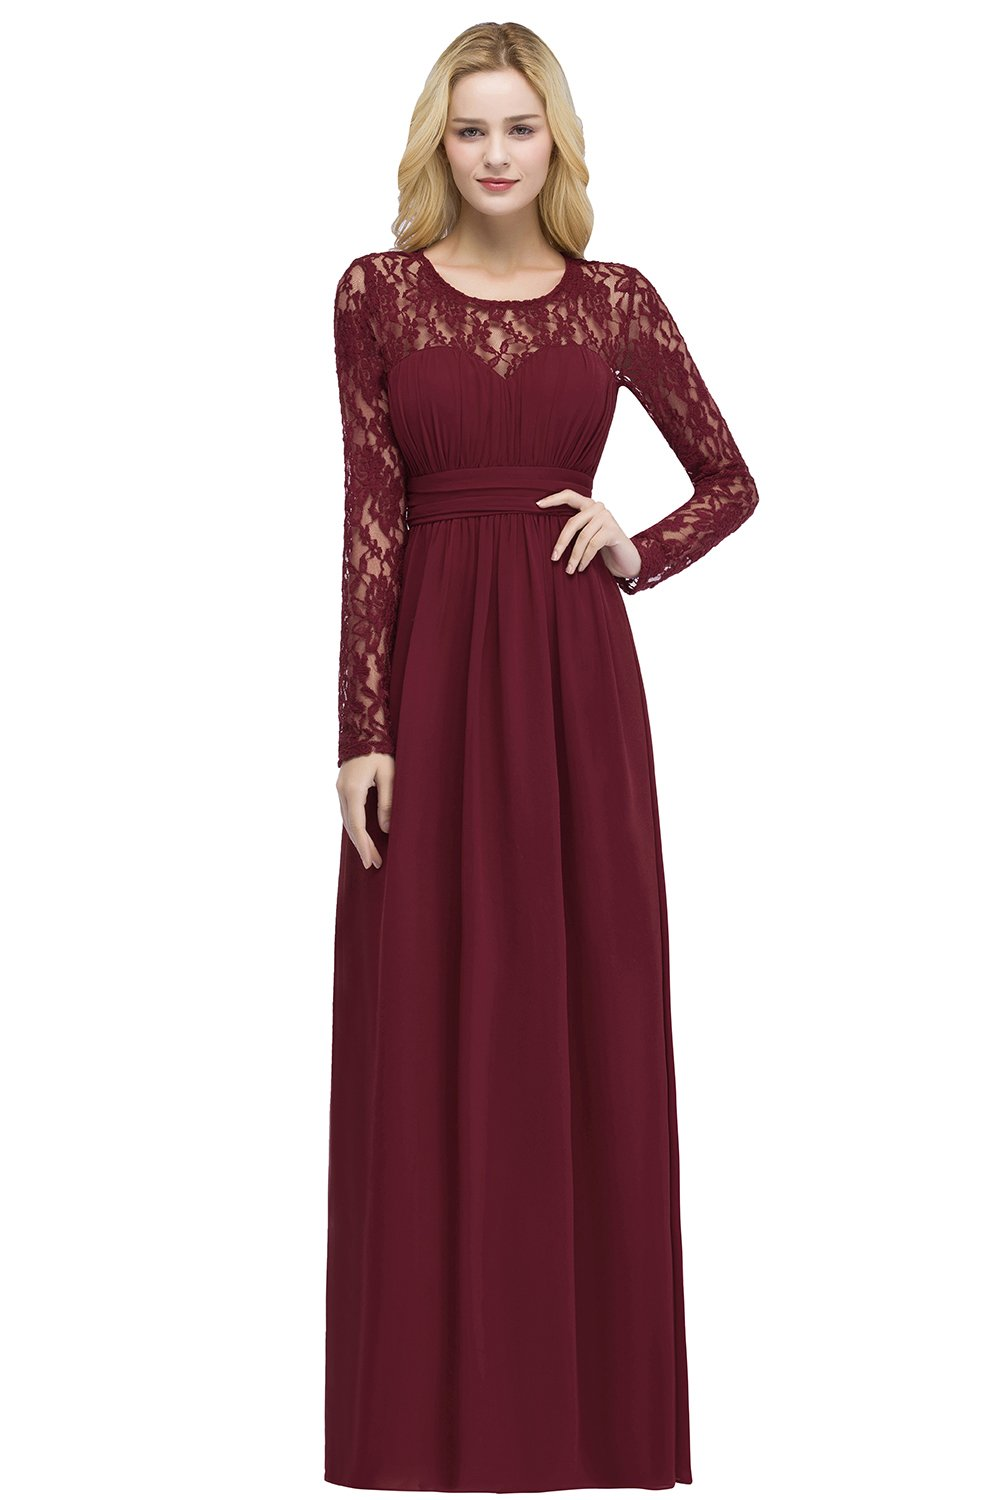 ae0ec1ede2 MisShow Women s Lace Applique Sheer Back Formal Prom Evening Gowns with Long  Sleeve .